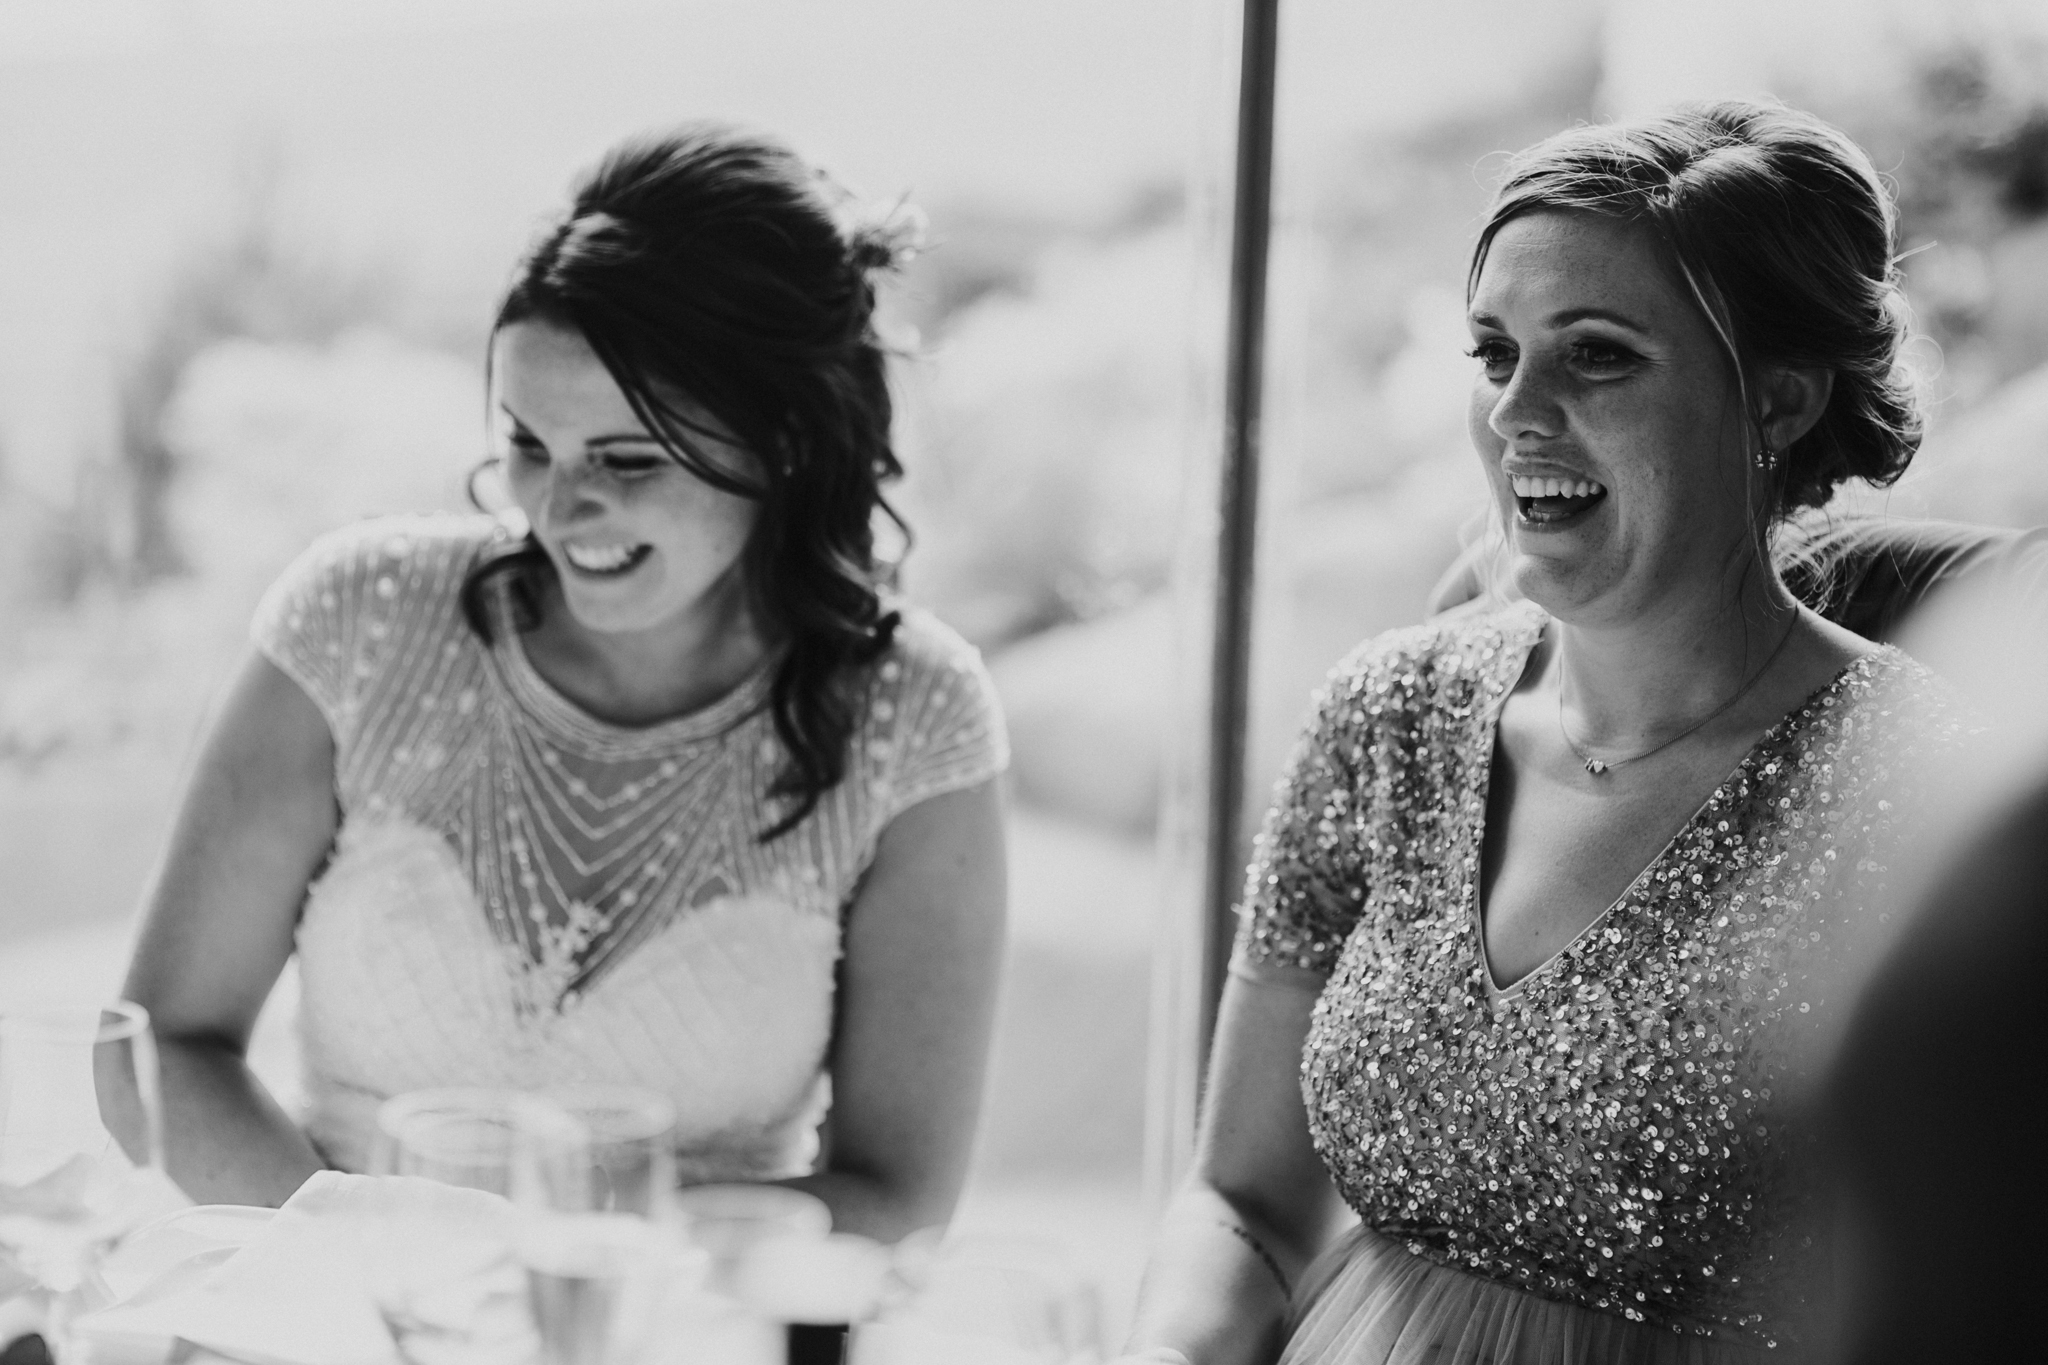 The sister of the bride is laughing during the speeches